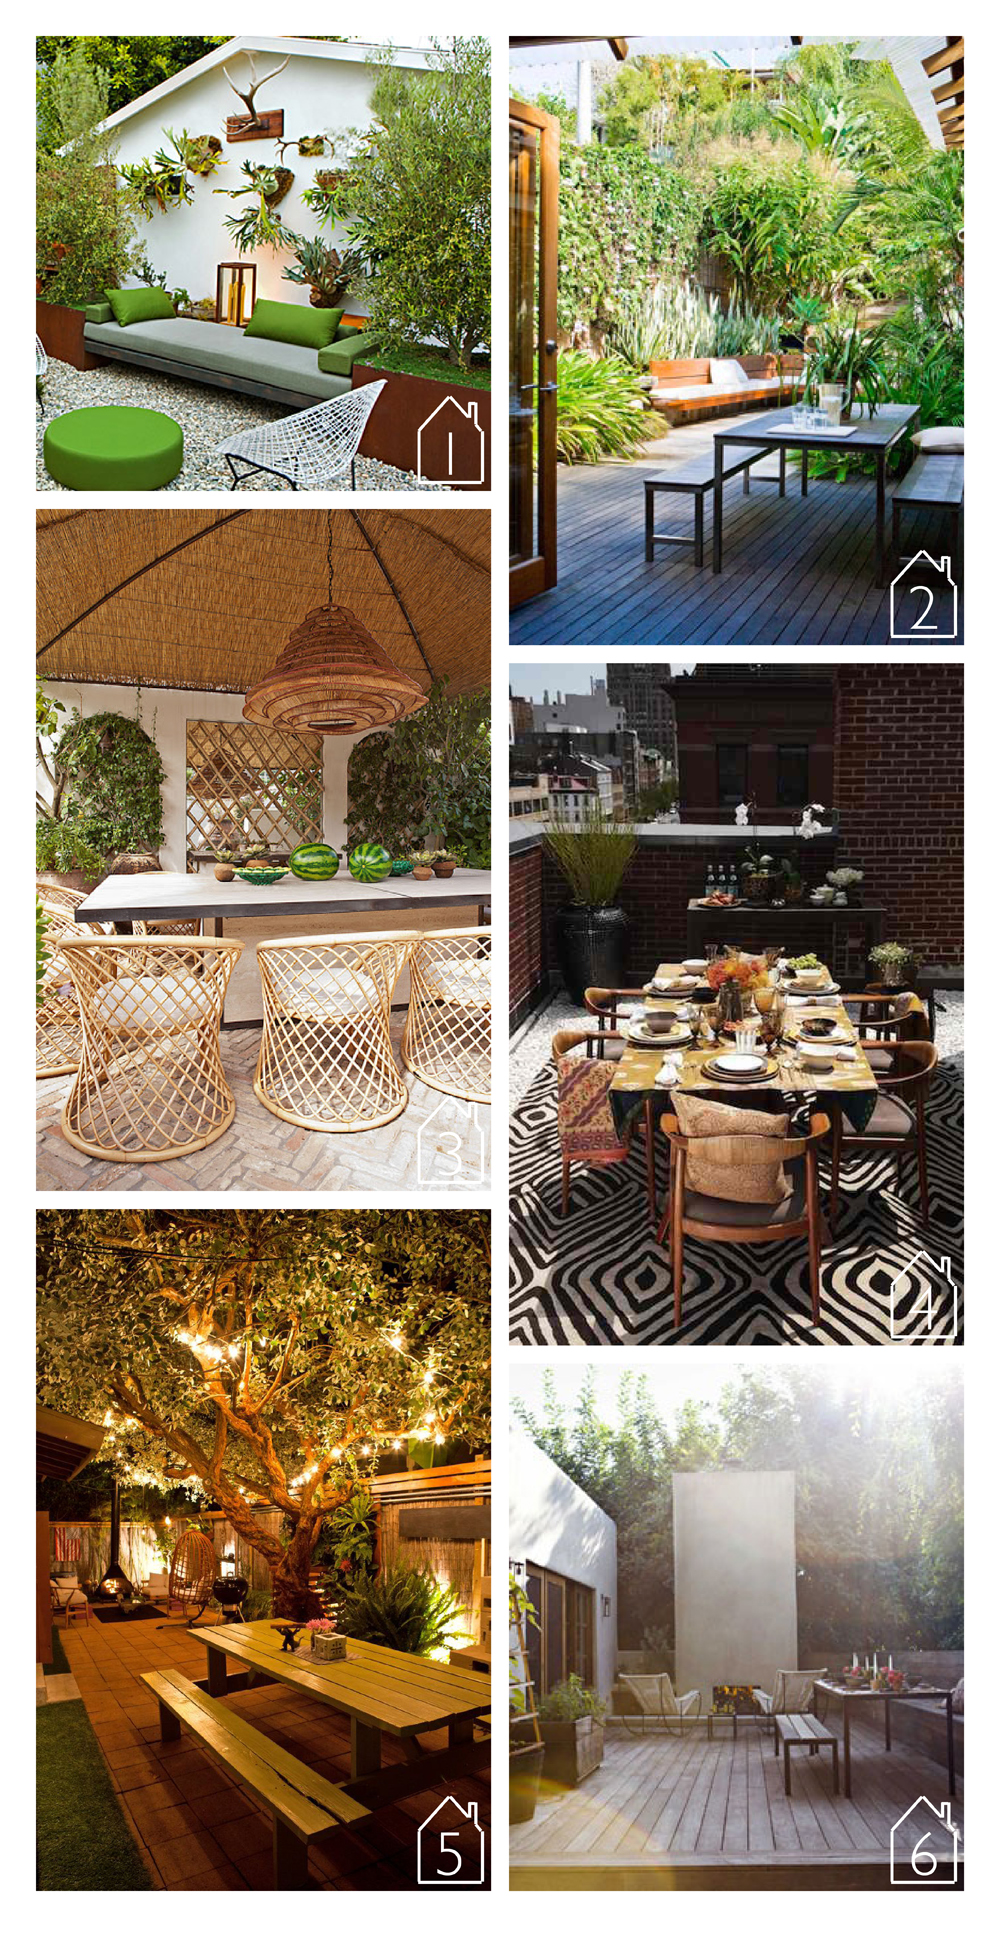 1. Design by  Andre Price Jackson  via  Sunset   2. Design by John Ward Designs via  Australian House and Garden   3. Design by Jean-Louis Deniot via  Habitually Chic   4. Design by  Diane von Furstenberg  with  Remodelista  via  Remodelista   5. Home of Ryan Benoit and Chantal Aida Gordon via  NY Times   6. Design by Pamela Shamshiri of  Commune Design  via  House Beautiful